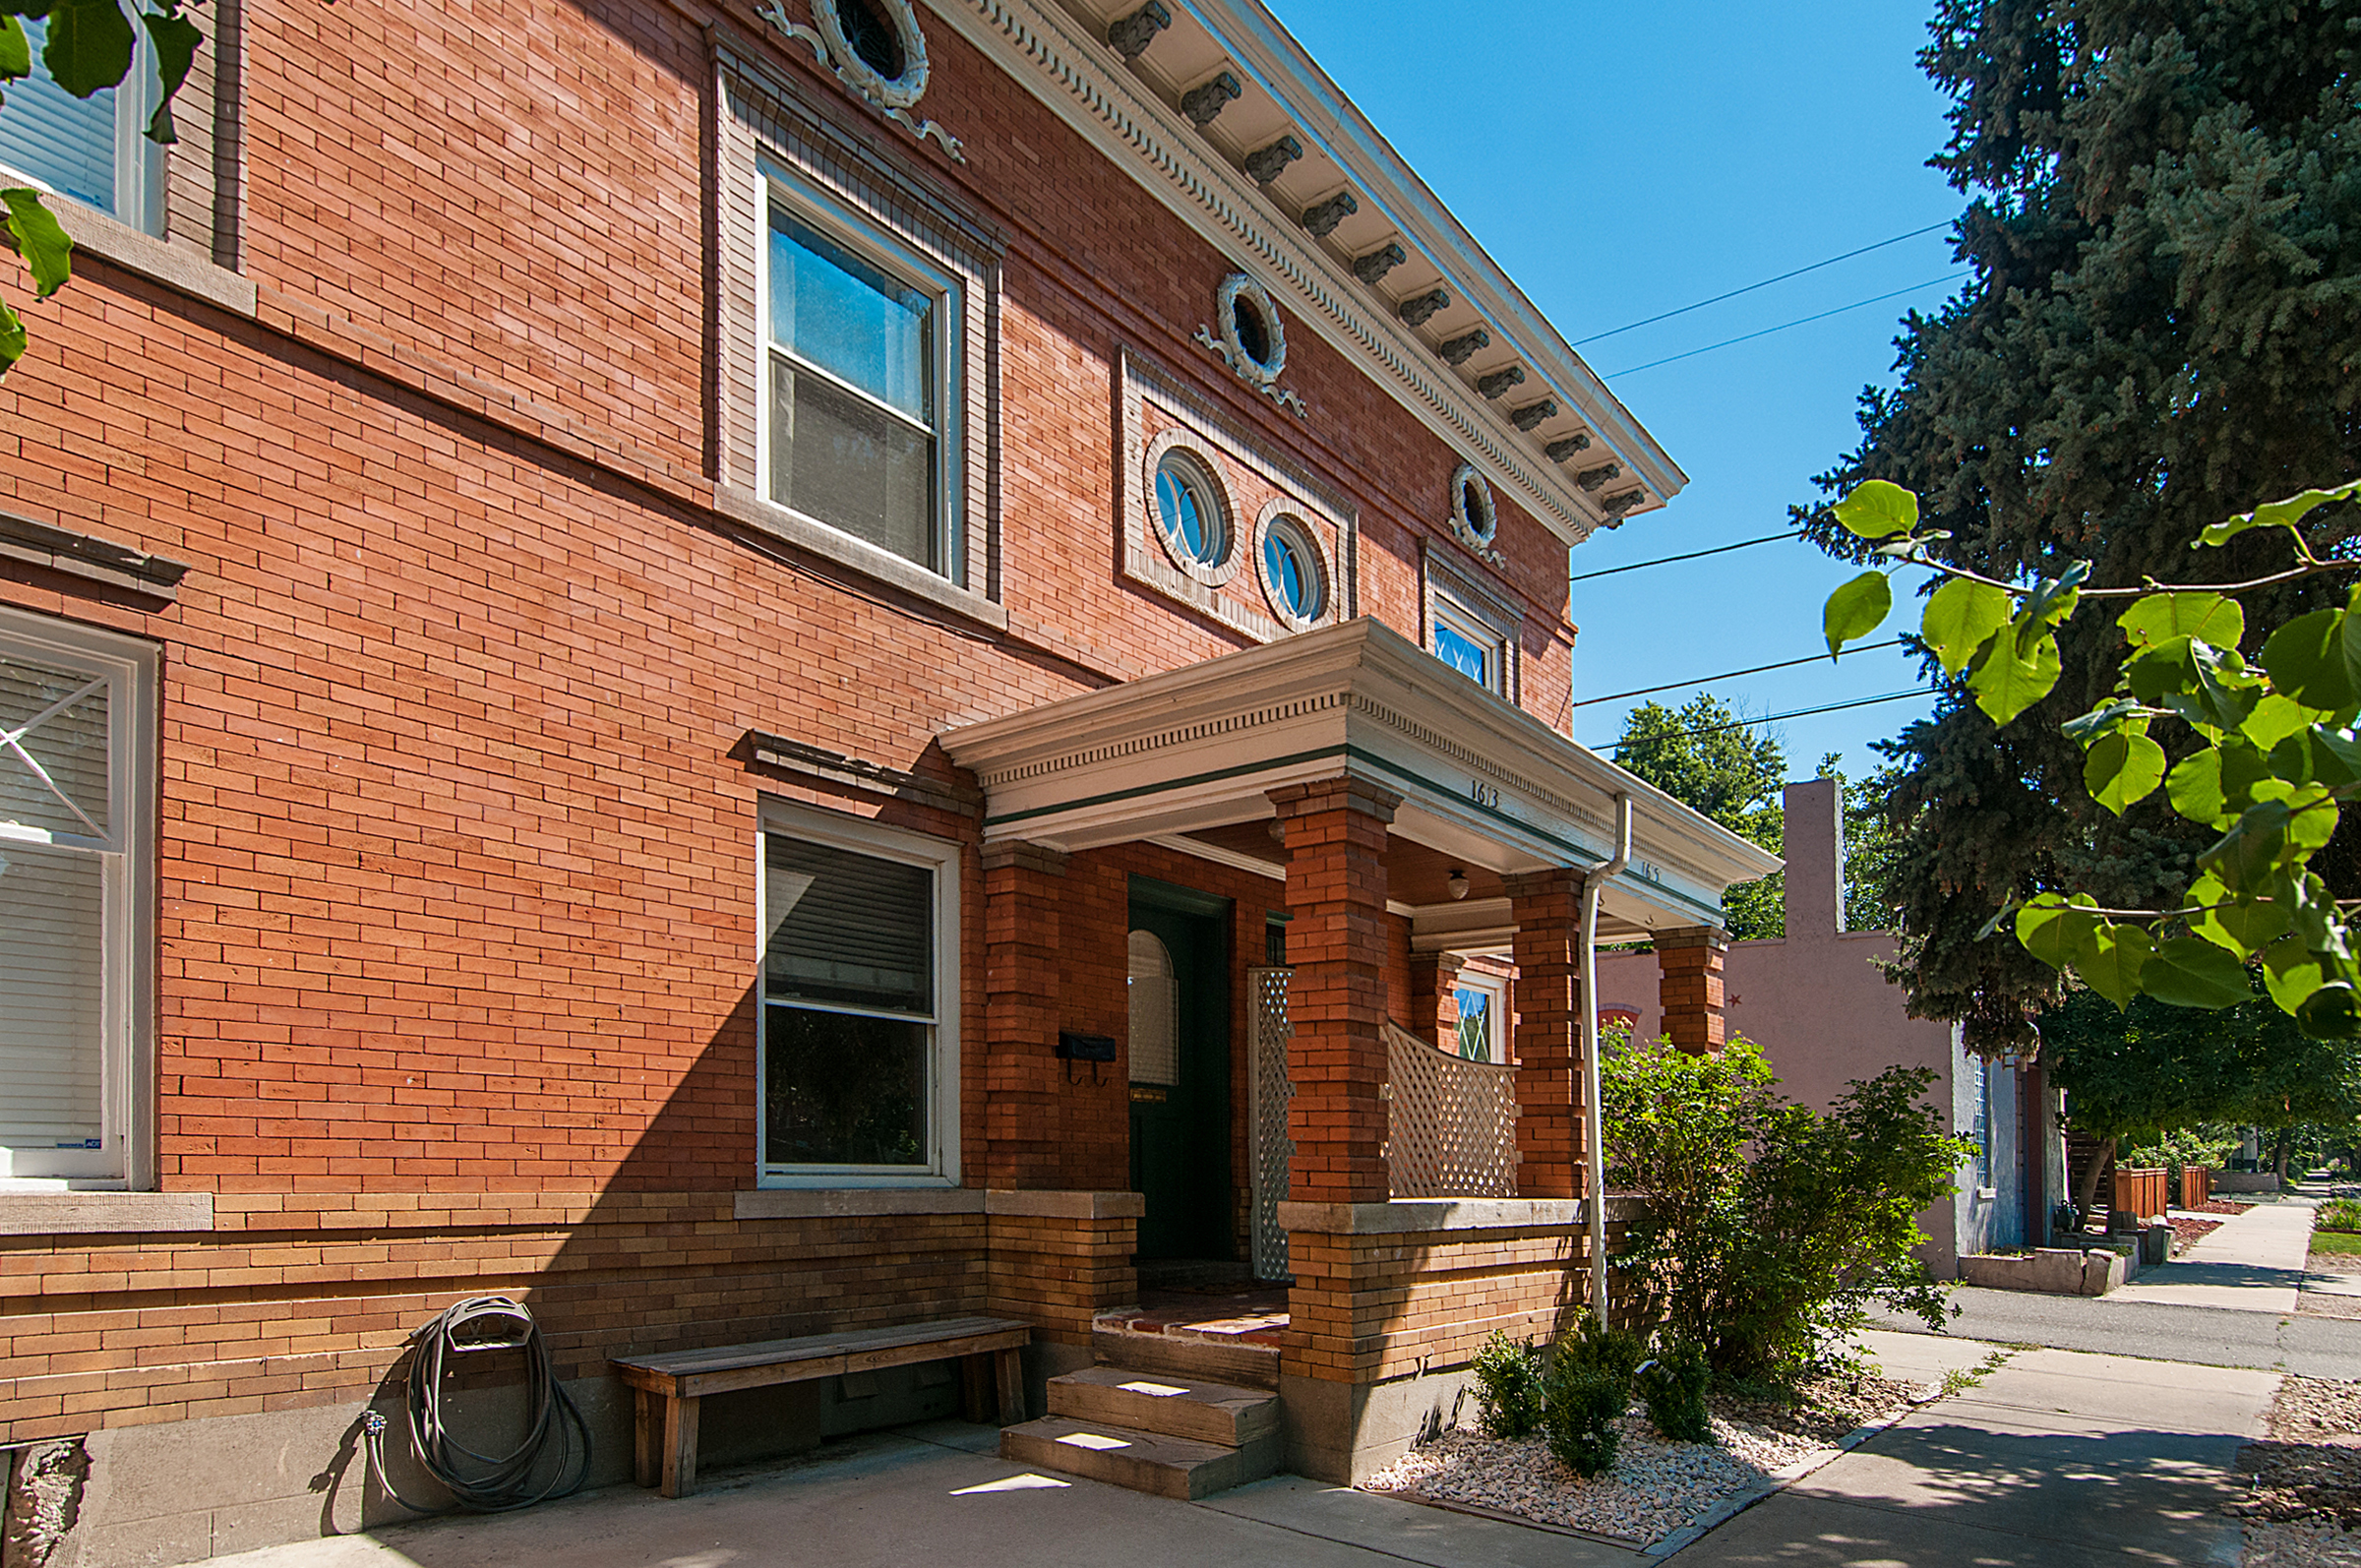 Single Family Home for Sale at Recently updated 2-story townhome 1613 E 25th Ave Denver, Colorado 80205 United States